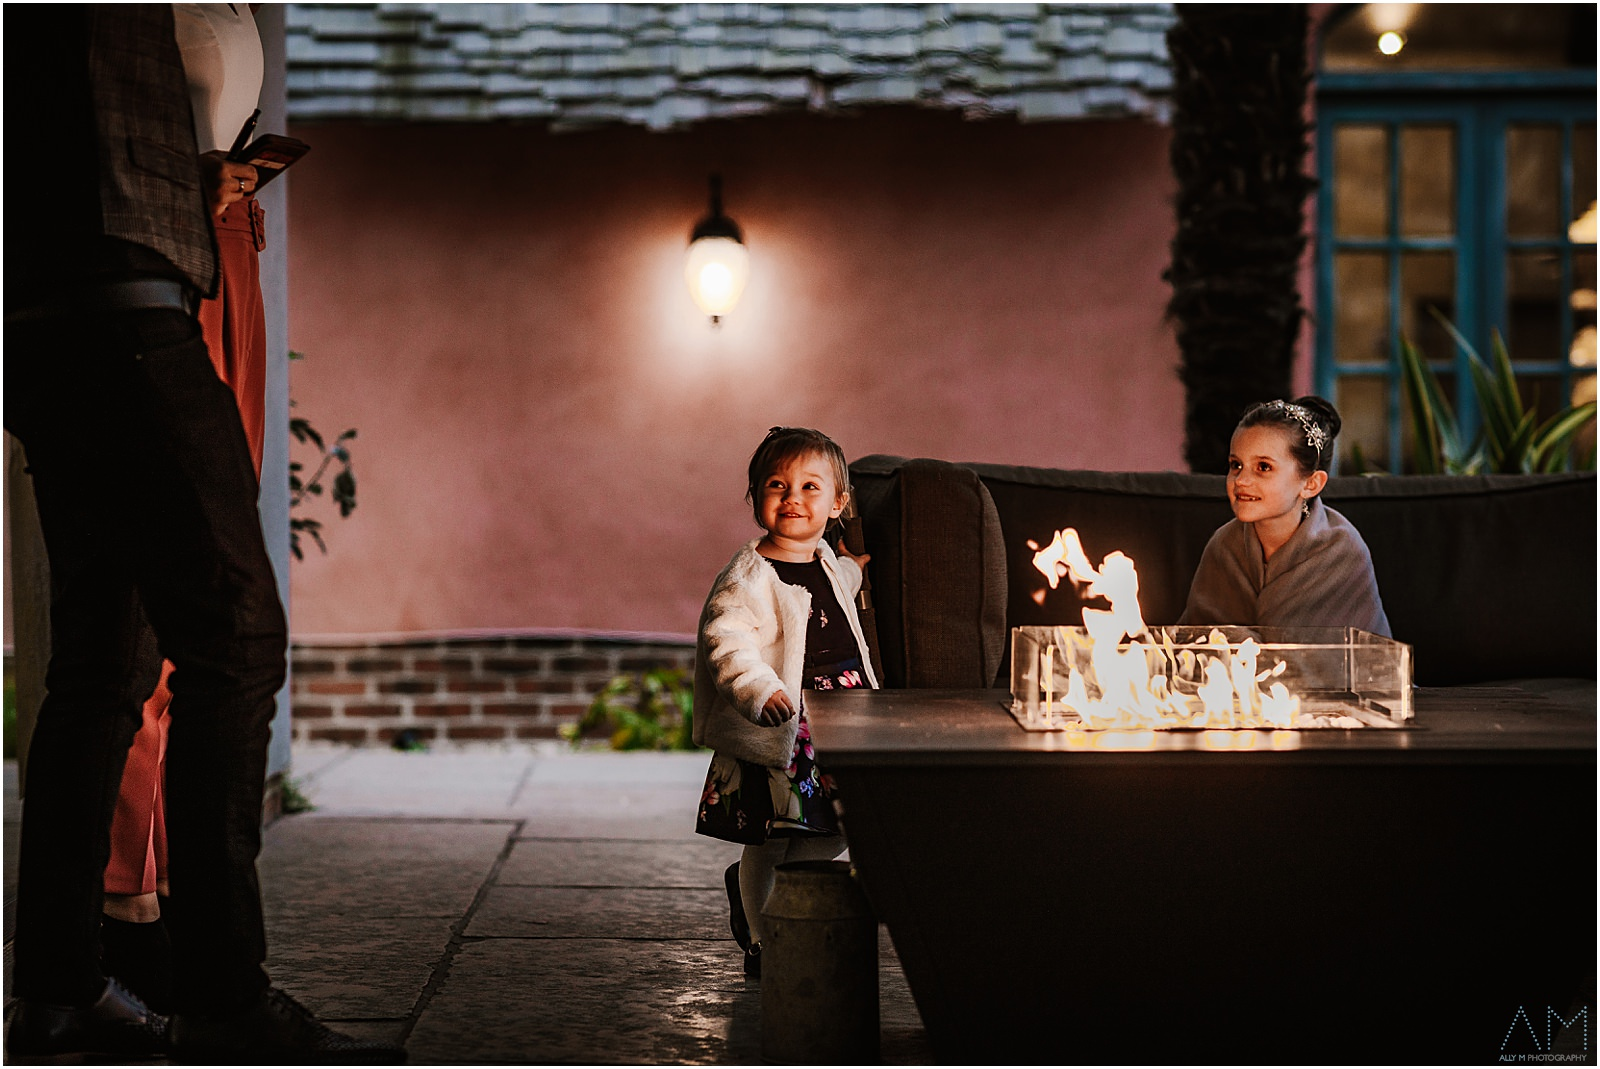 Little girls by the fire pit